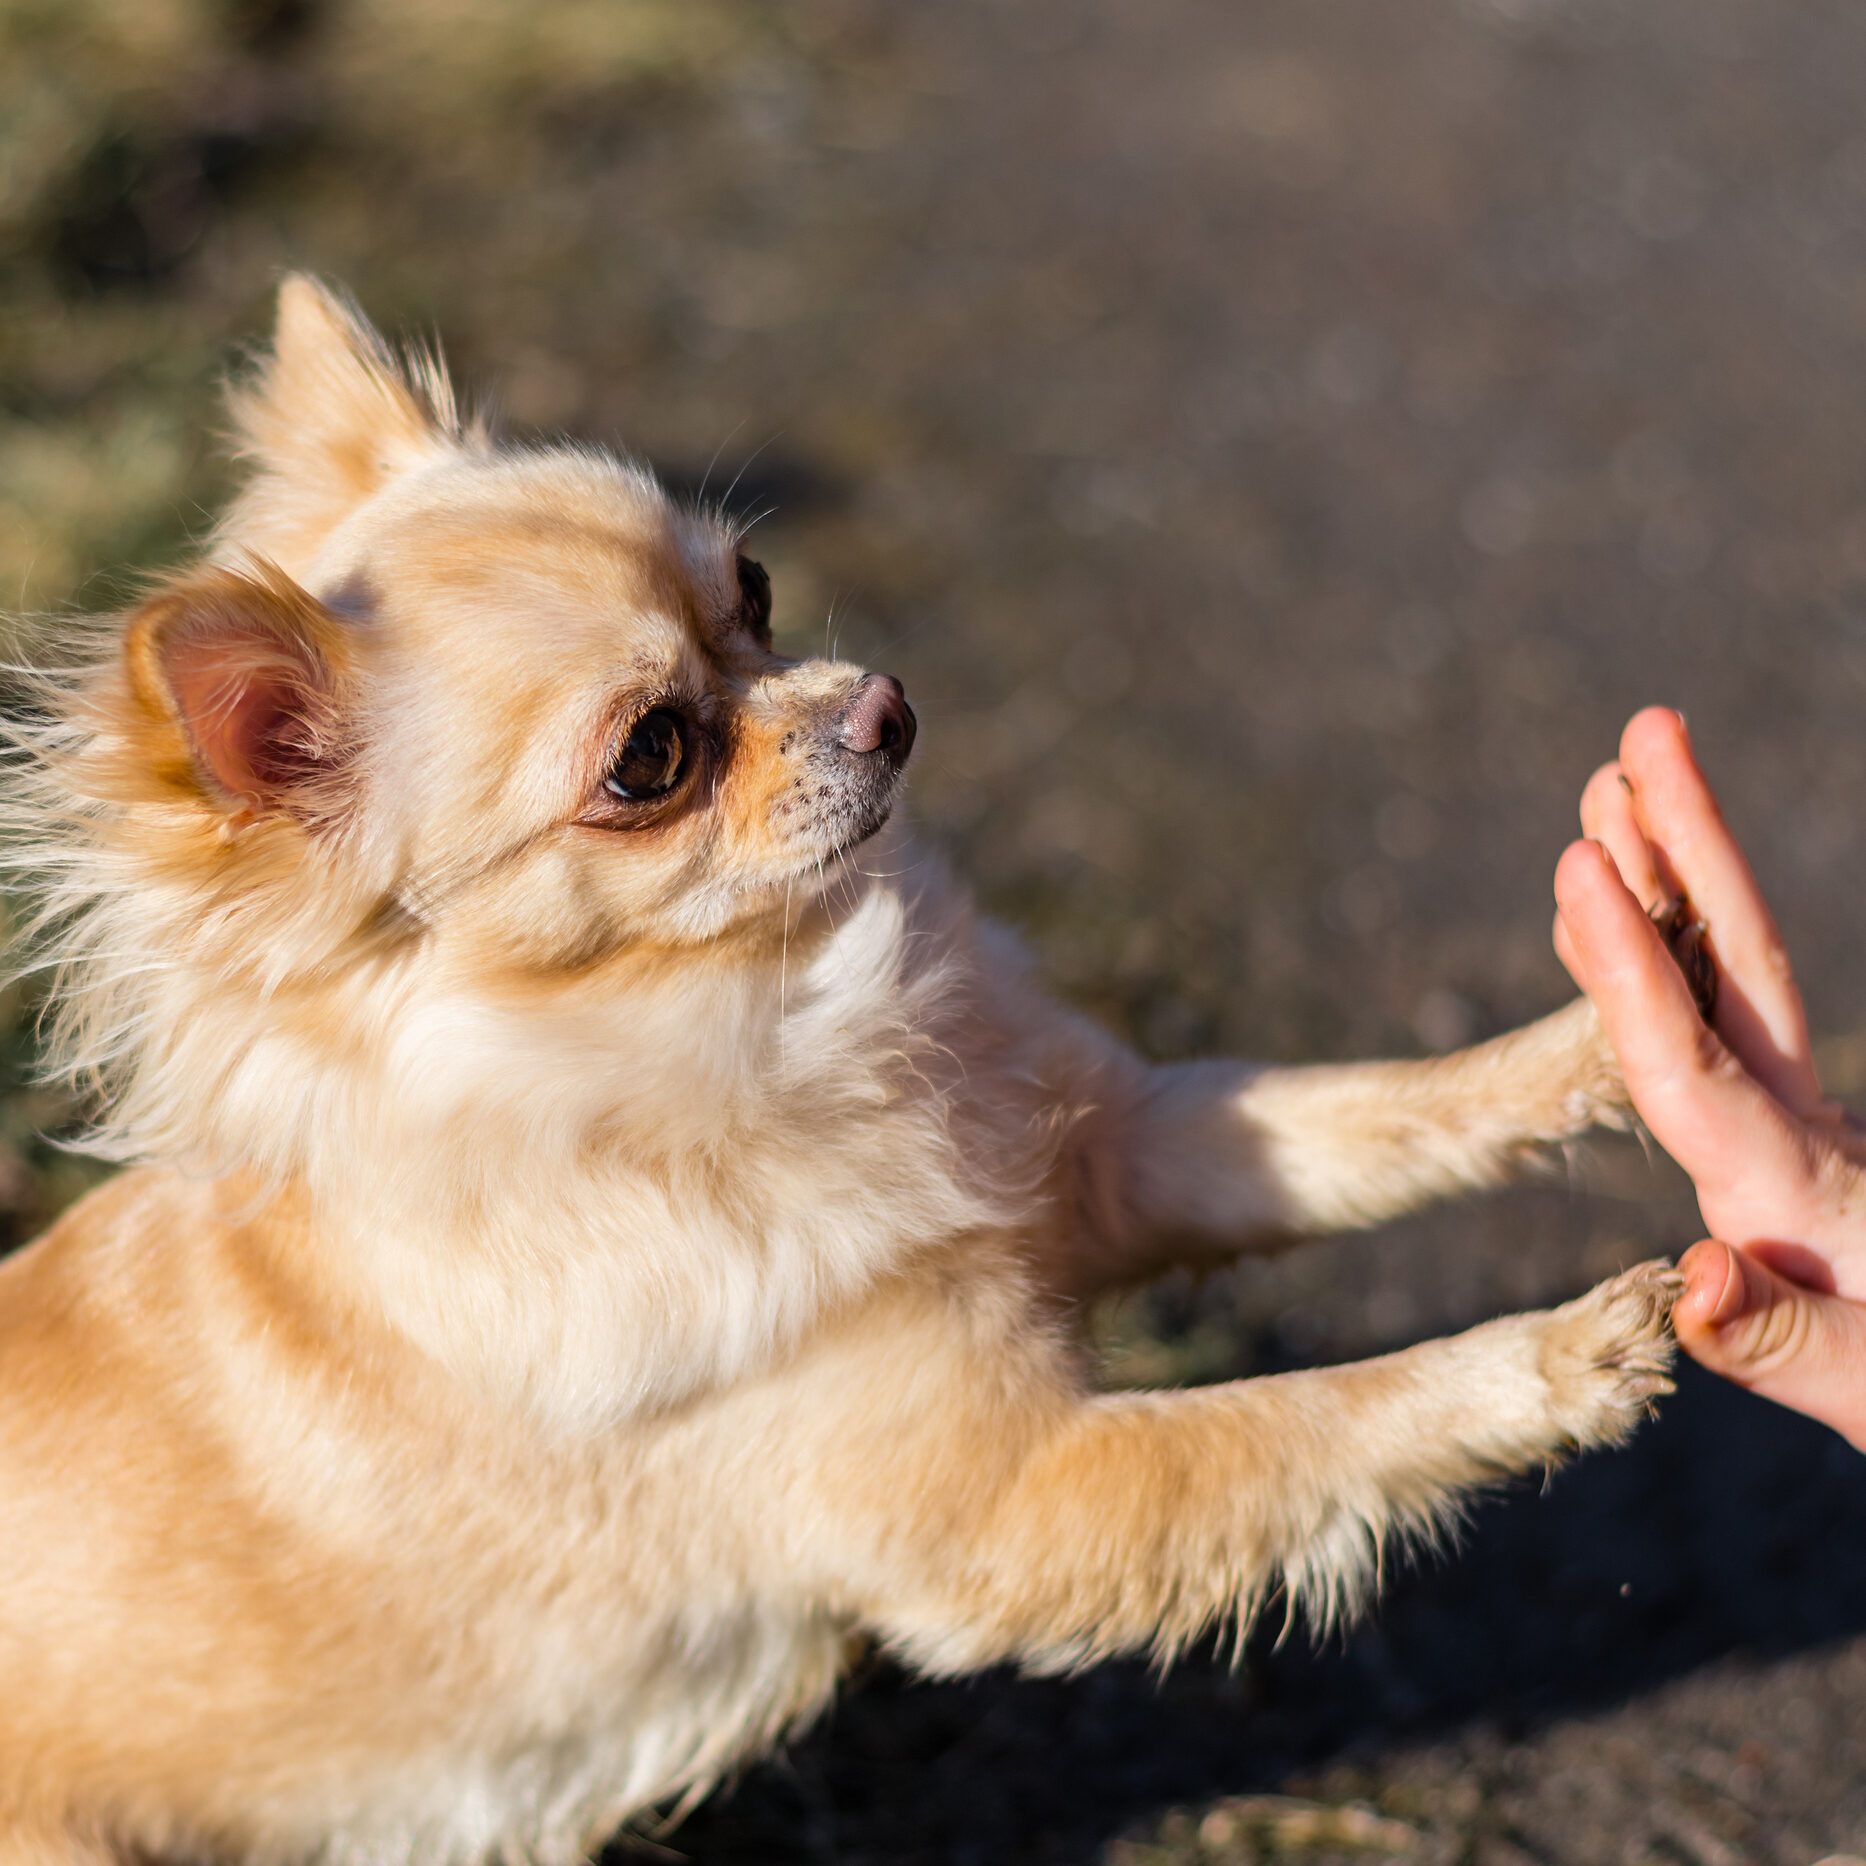 Young gril playing with her dog outside on a field. Dog is very happy. Friendship between human and dog. Dog giving a paw, high five.